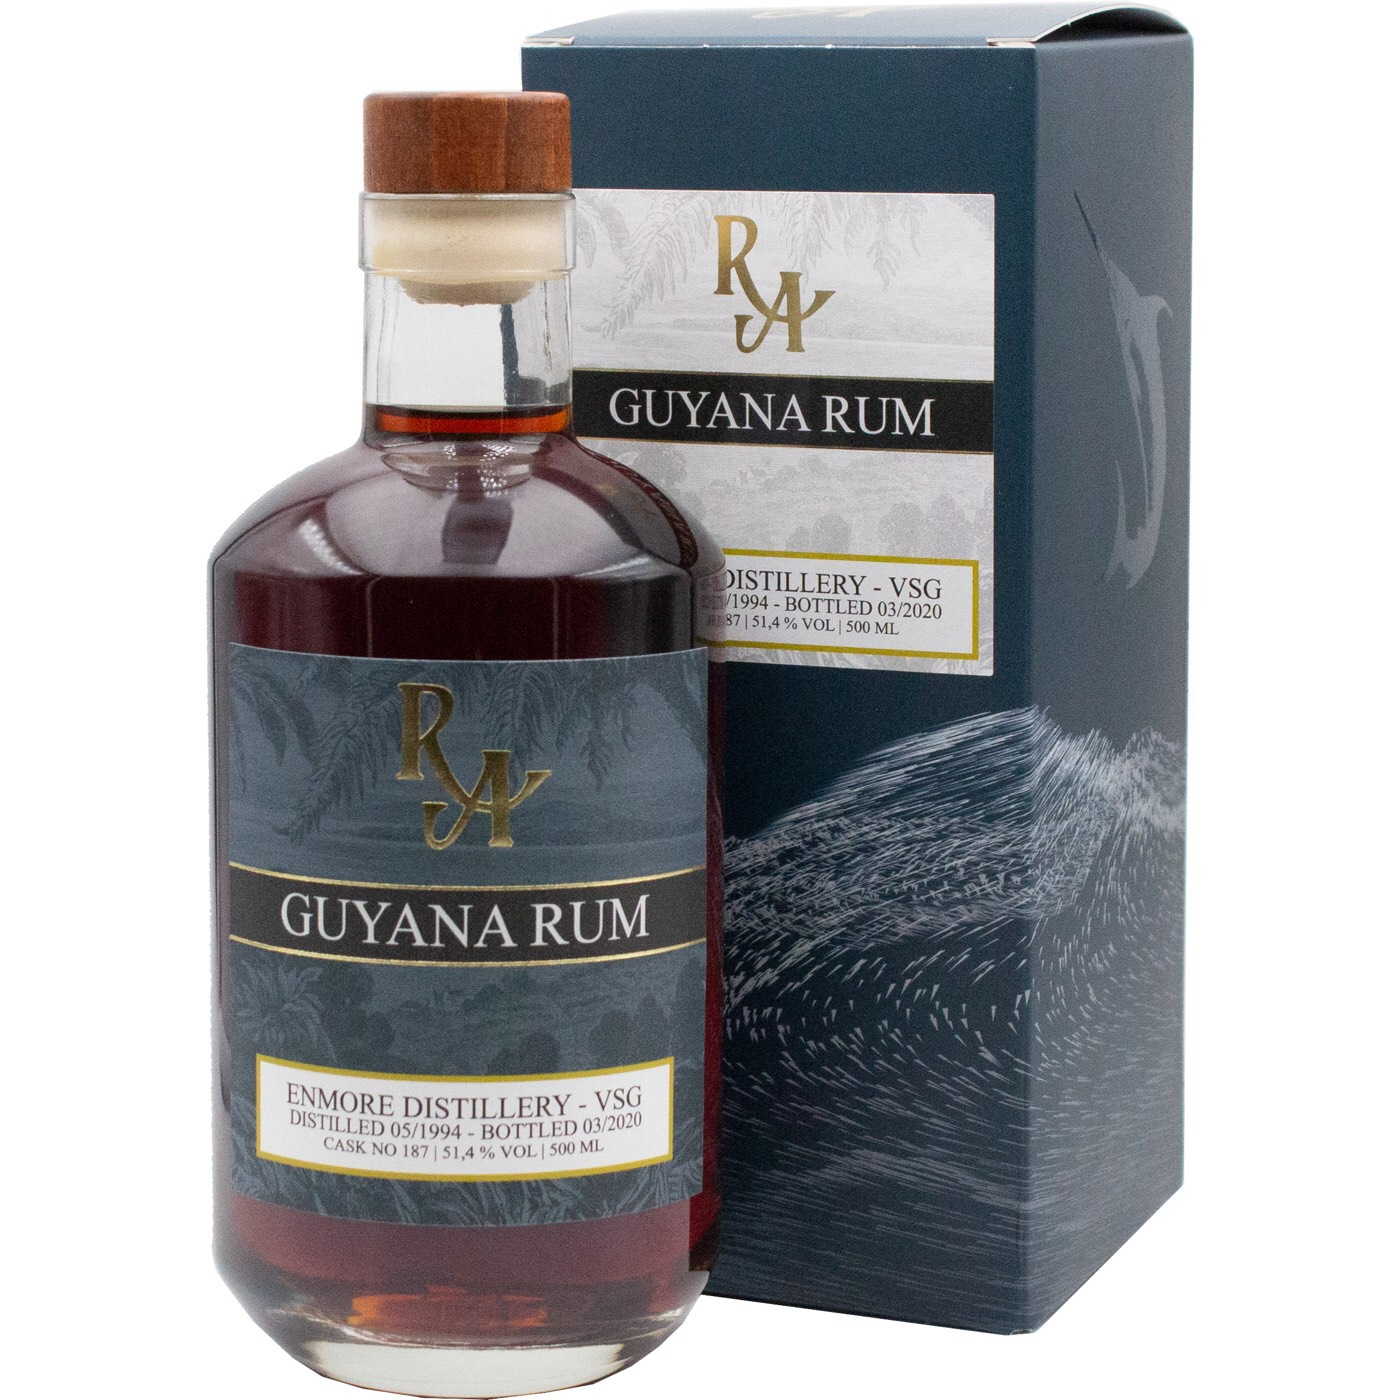 Bottle image of Rum Artesanal Guyana Rum REV